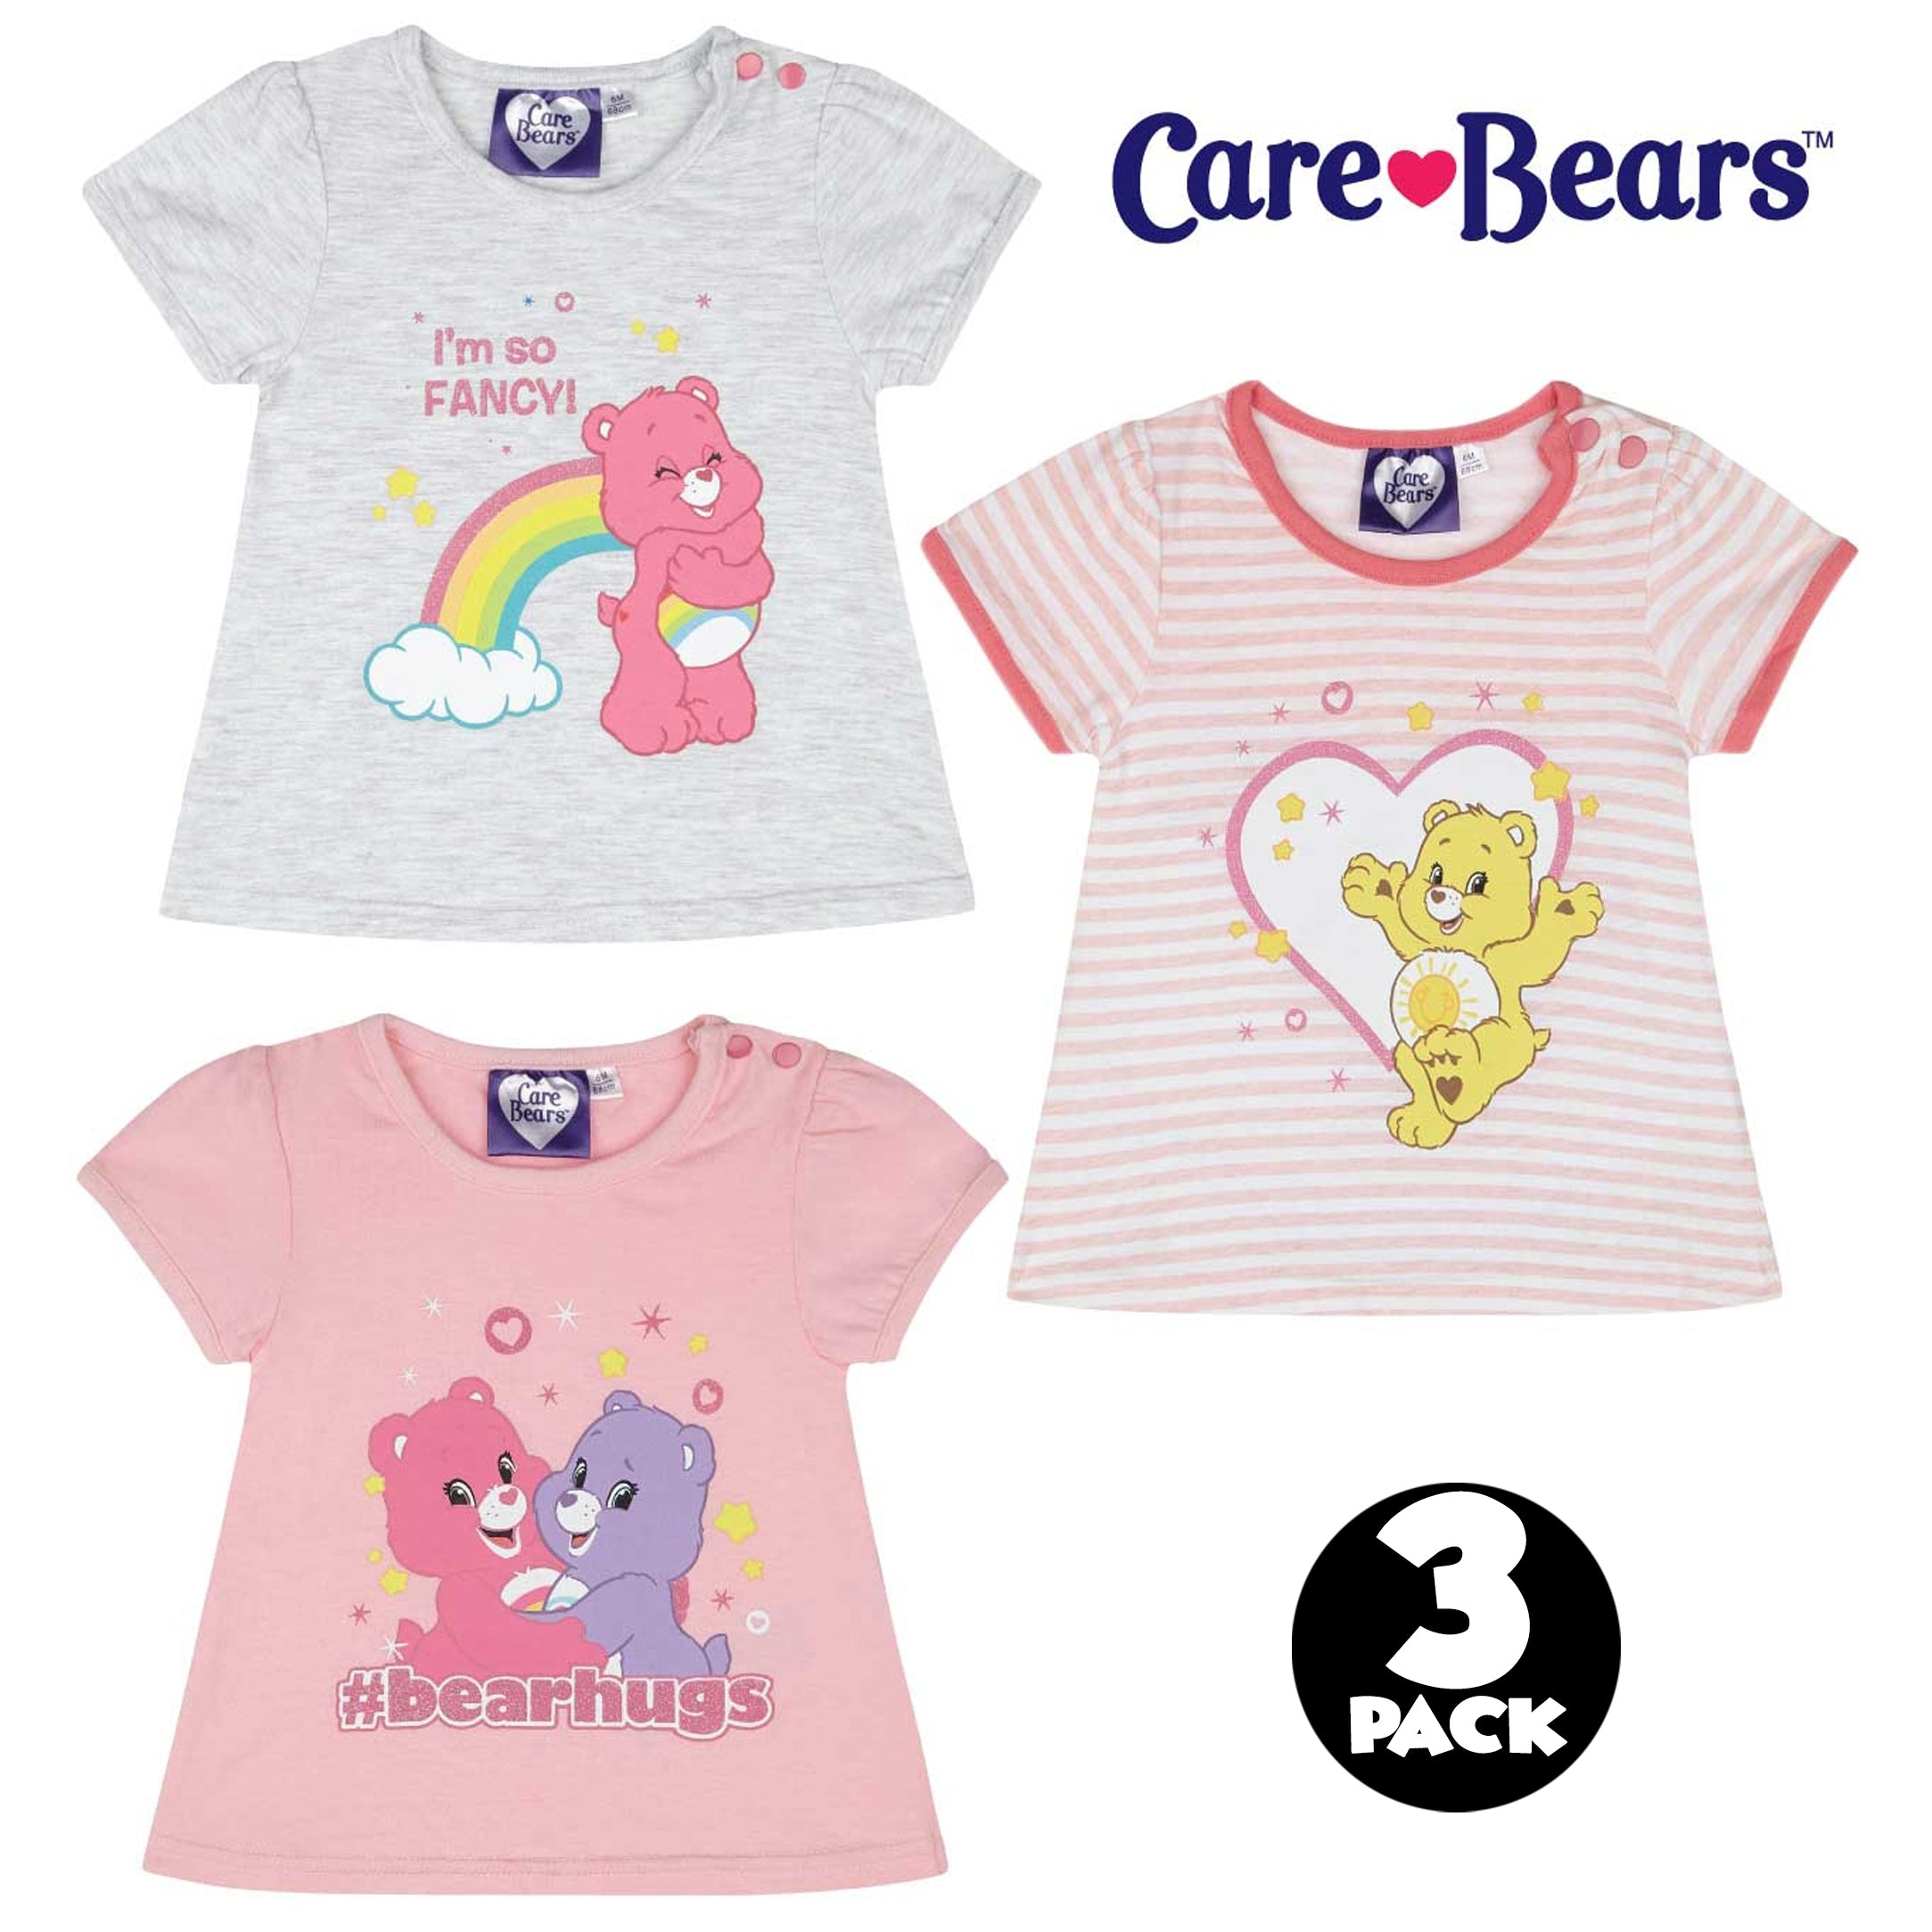 b530814f9 Cary Bears Original Baby Girls 3-PACK, Multi Pack T-Shirt Cotton ...